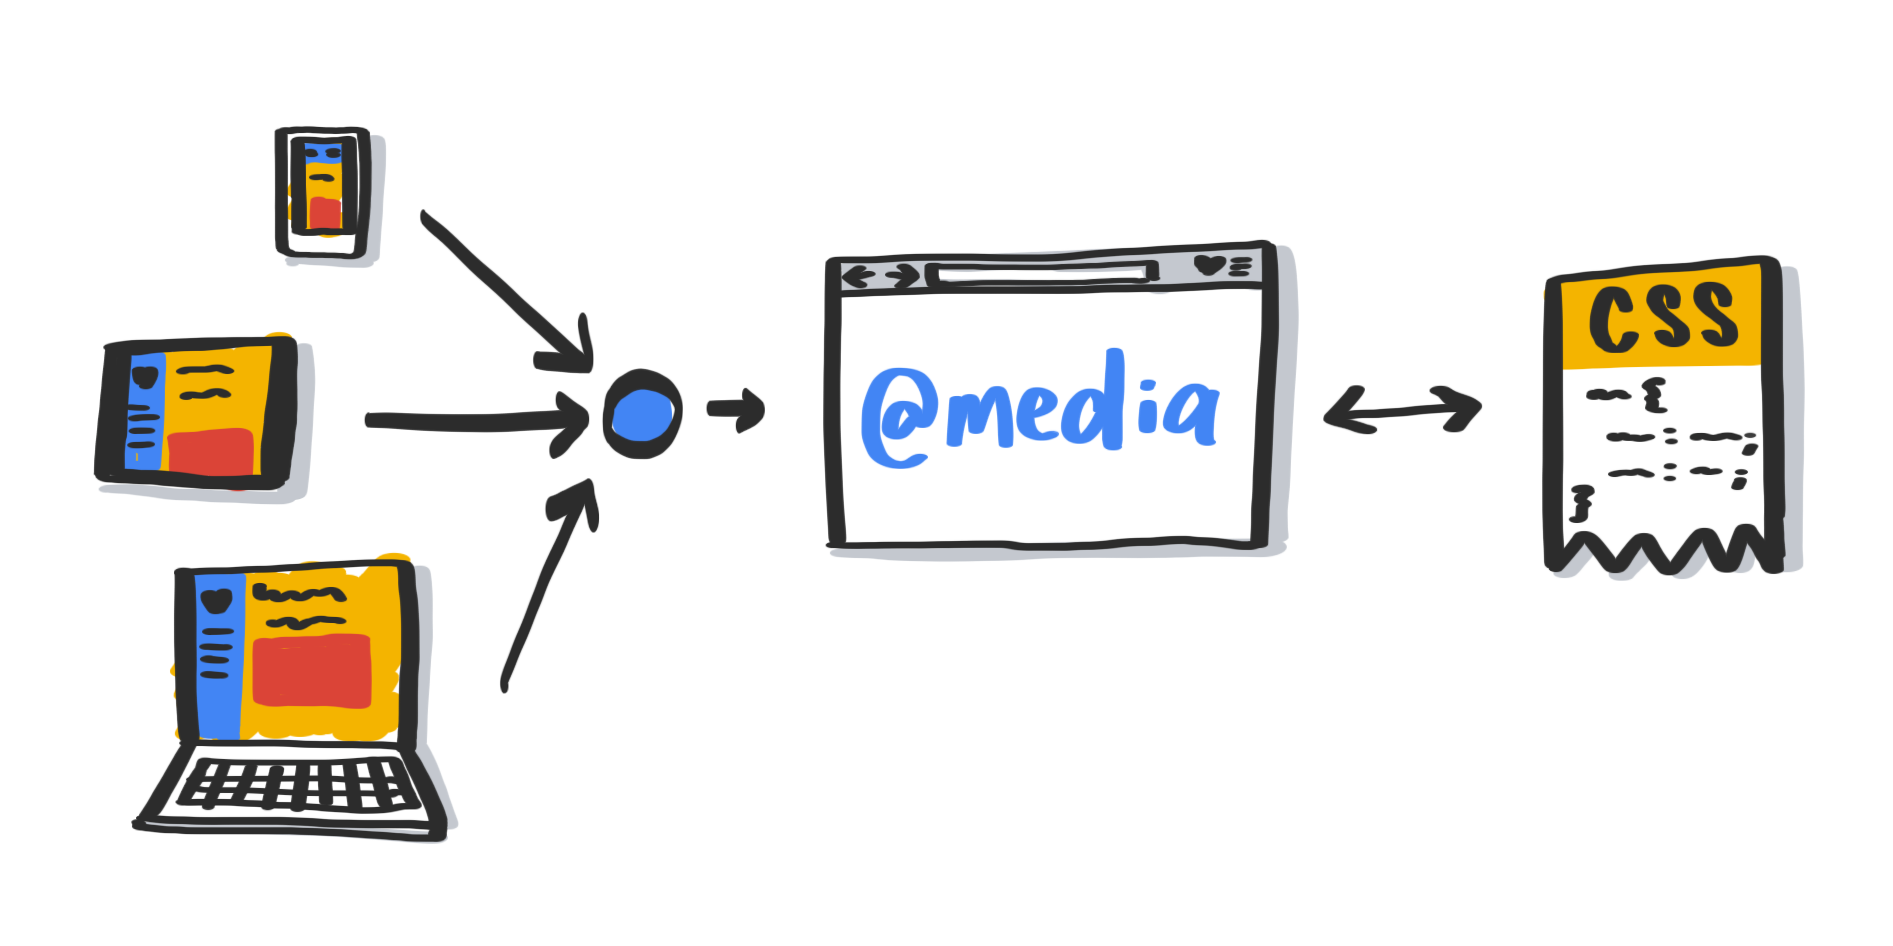 A diagram showing media queries interpreting system-level user preferences.